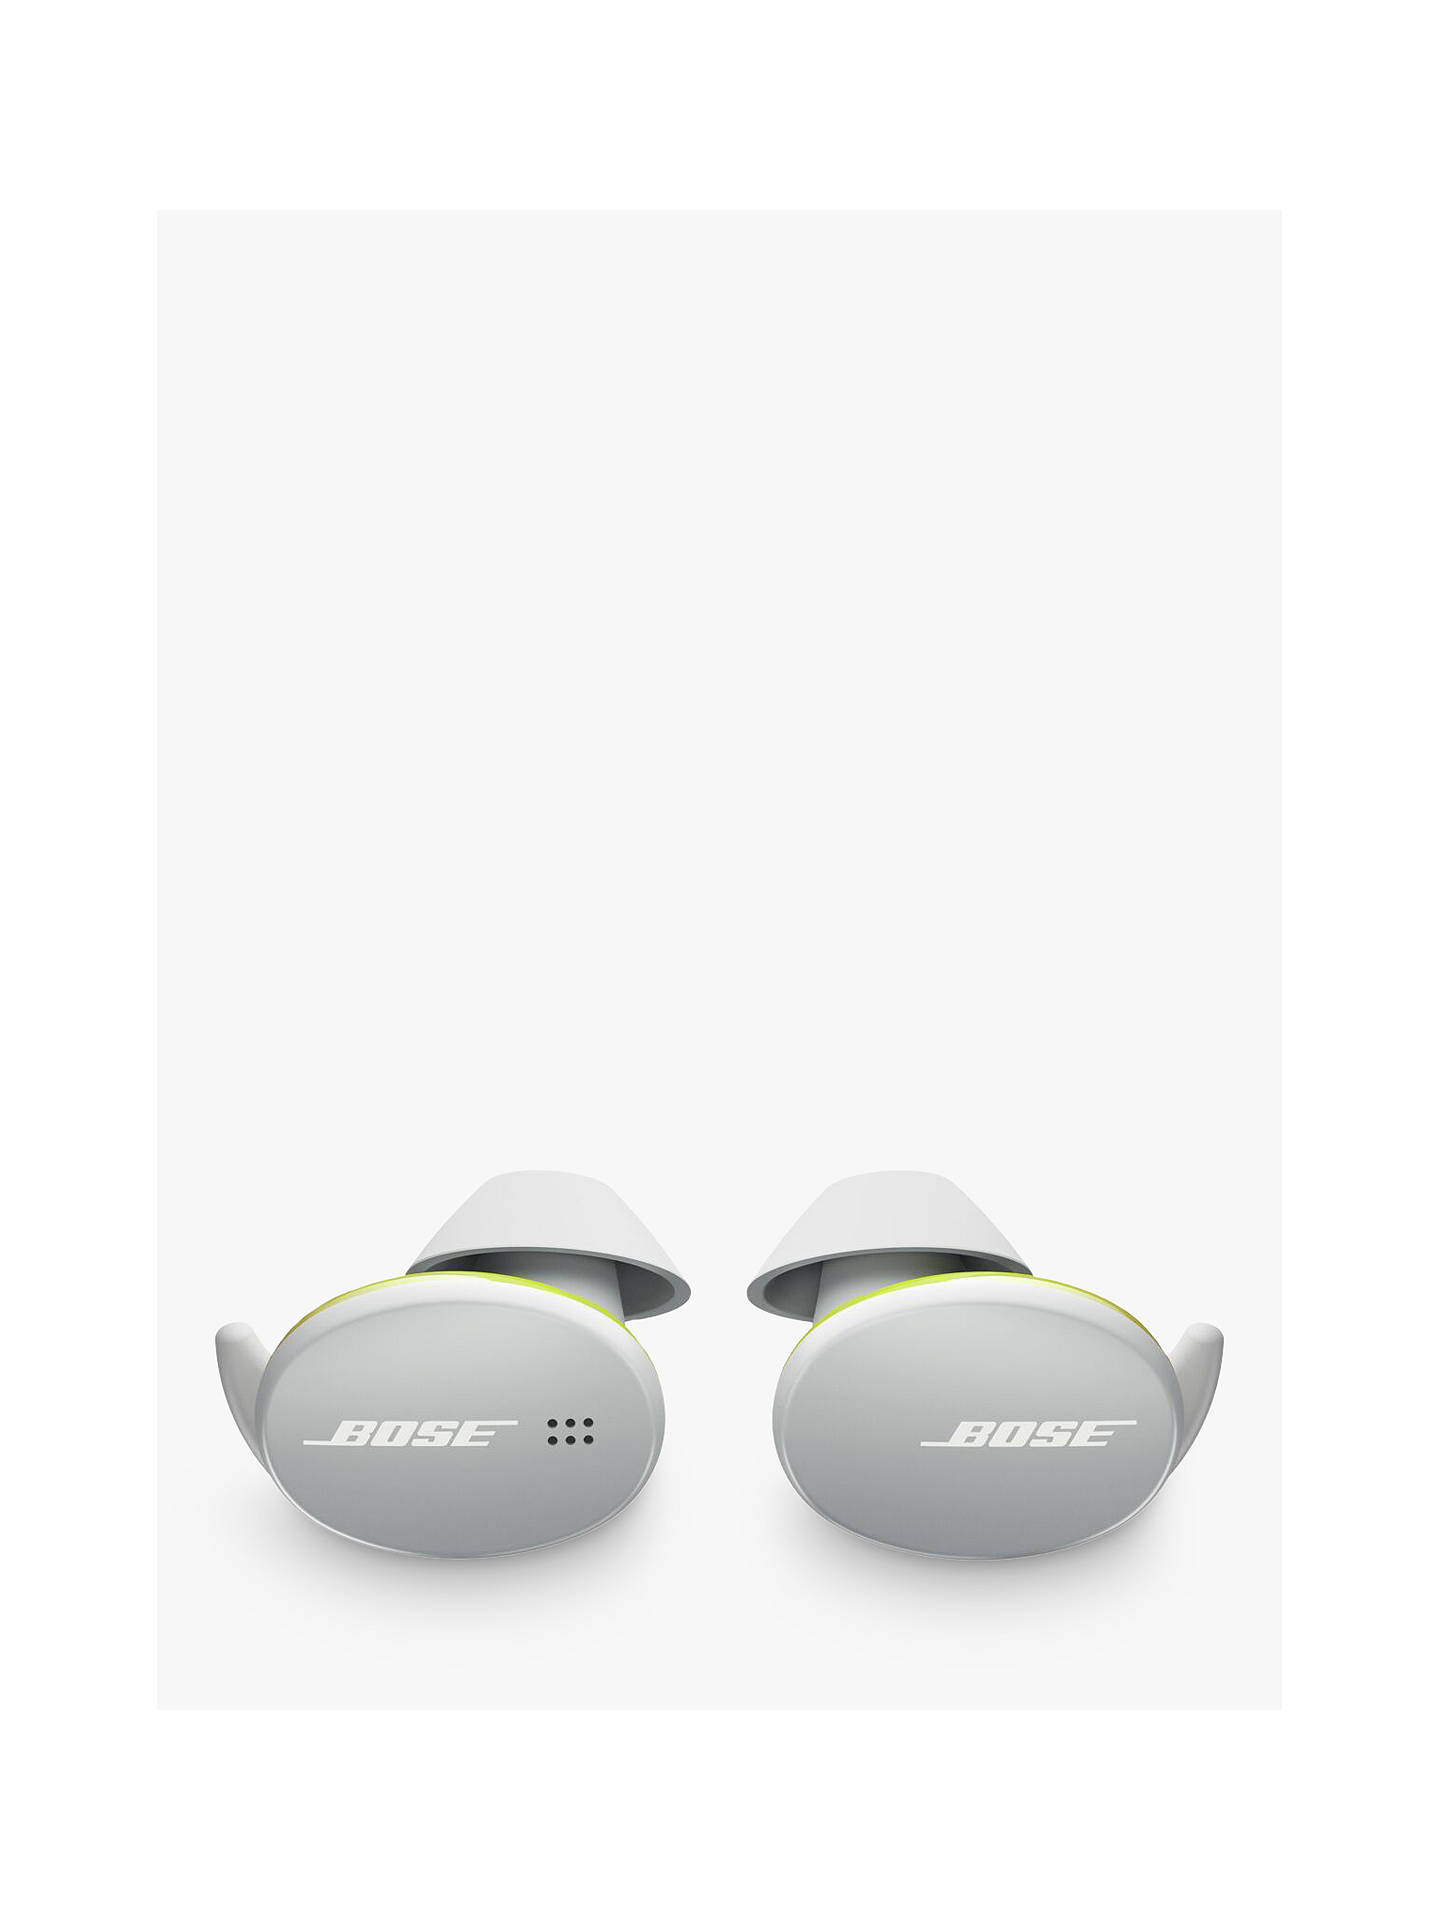 Buy Bose® Sport Earbuds True Wireless Sweat & Weather-Resistant Bluetooth In-Ear Headphones with Mic/Remote, Glacier White Online at johnlewis.com